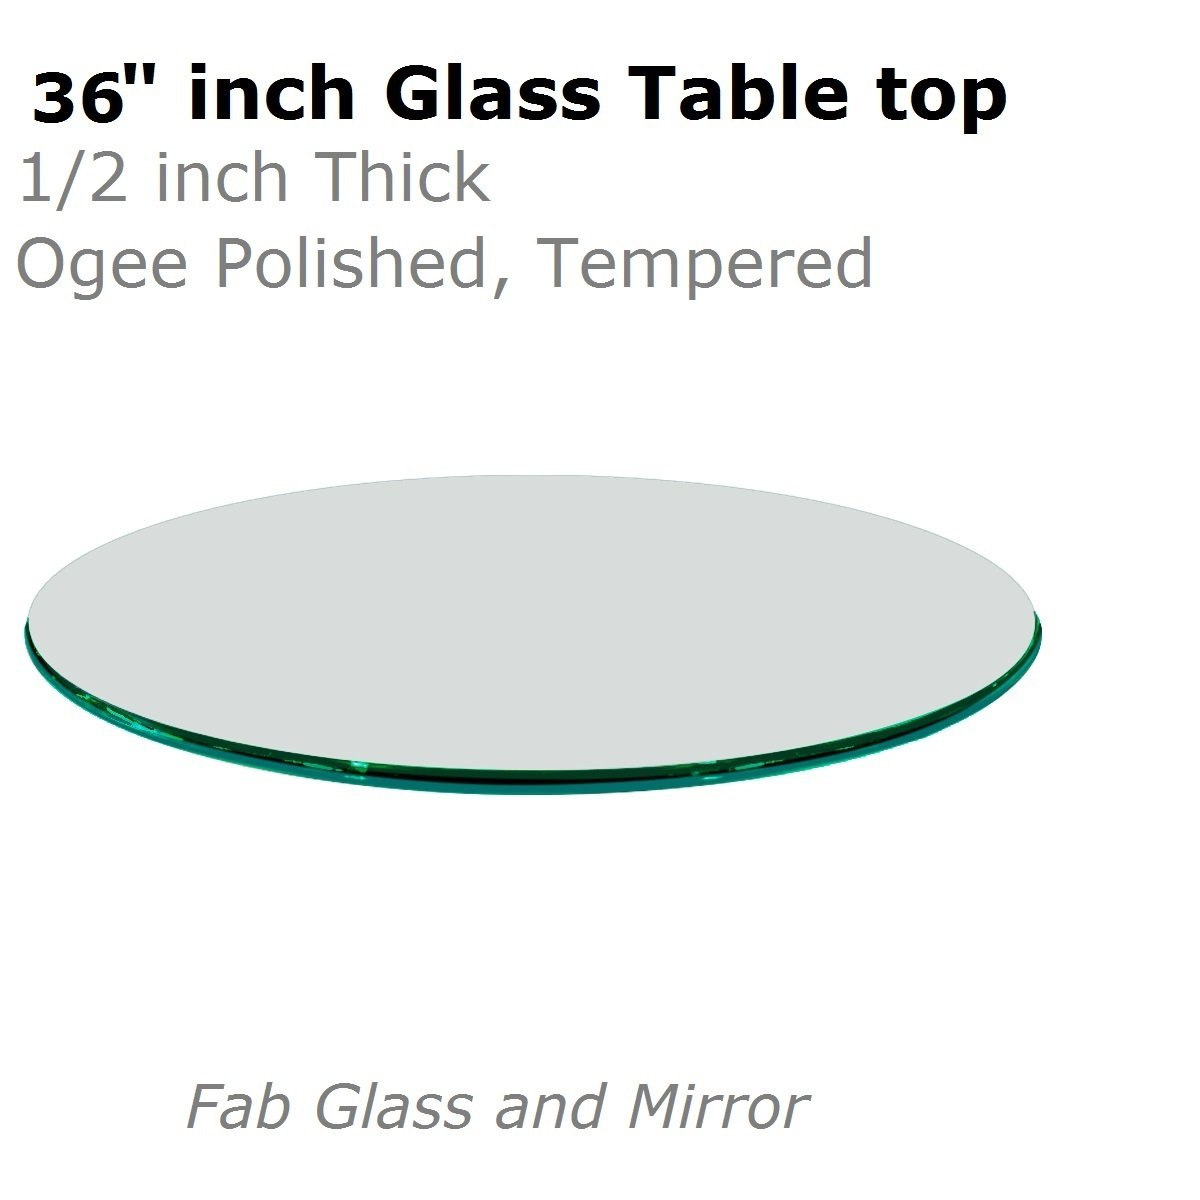 Fab Glass and Mirror 1/2 Thick Ogee Tempered Round Glass Table Top, 36''